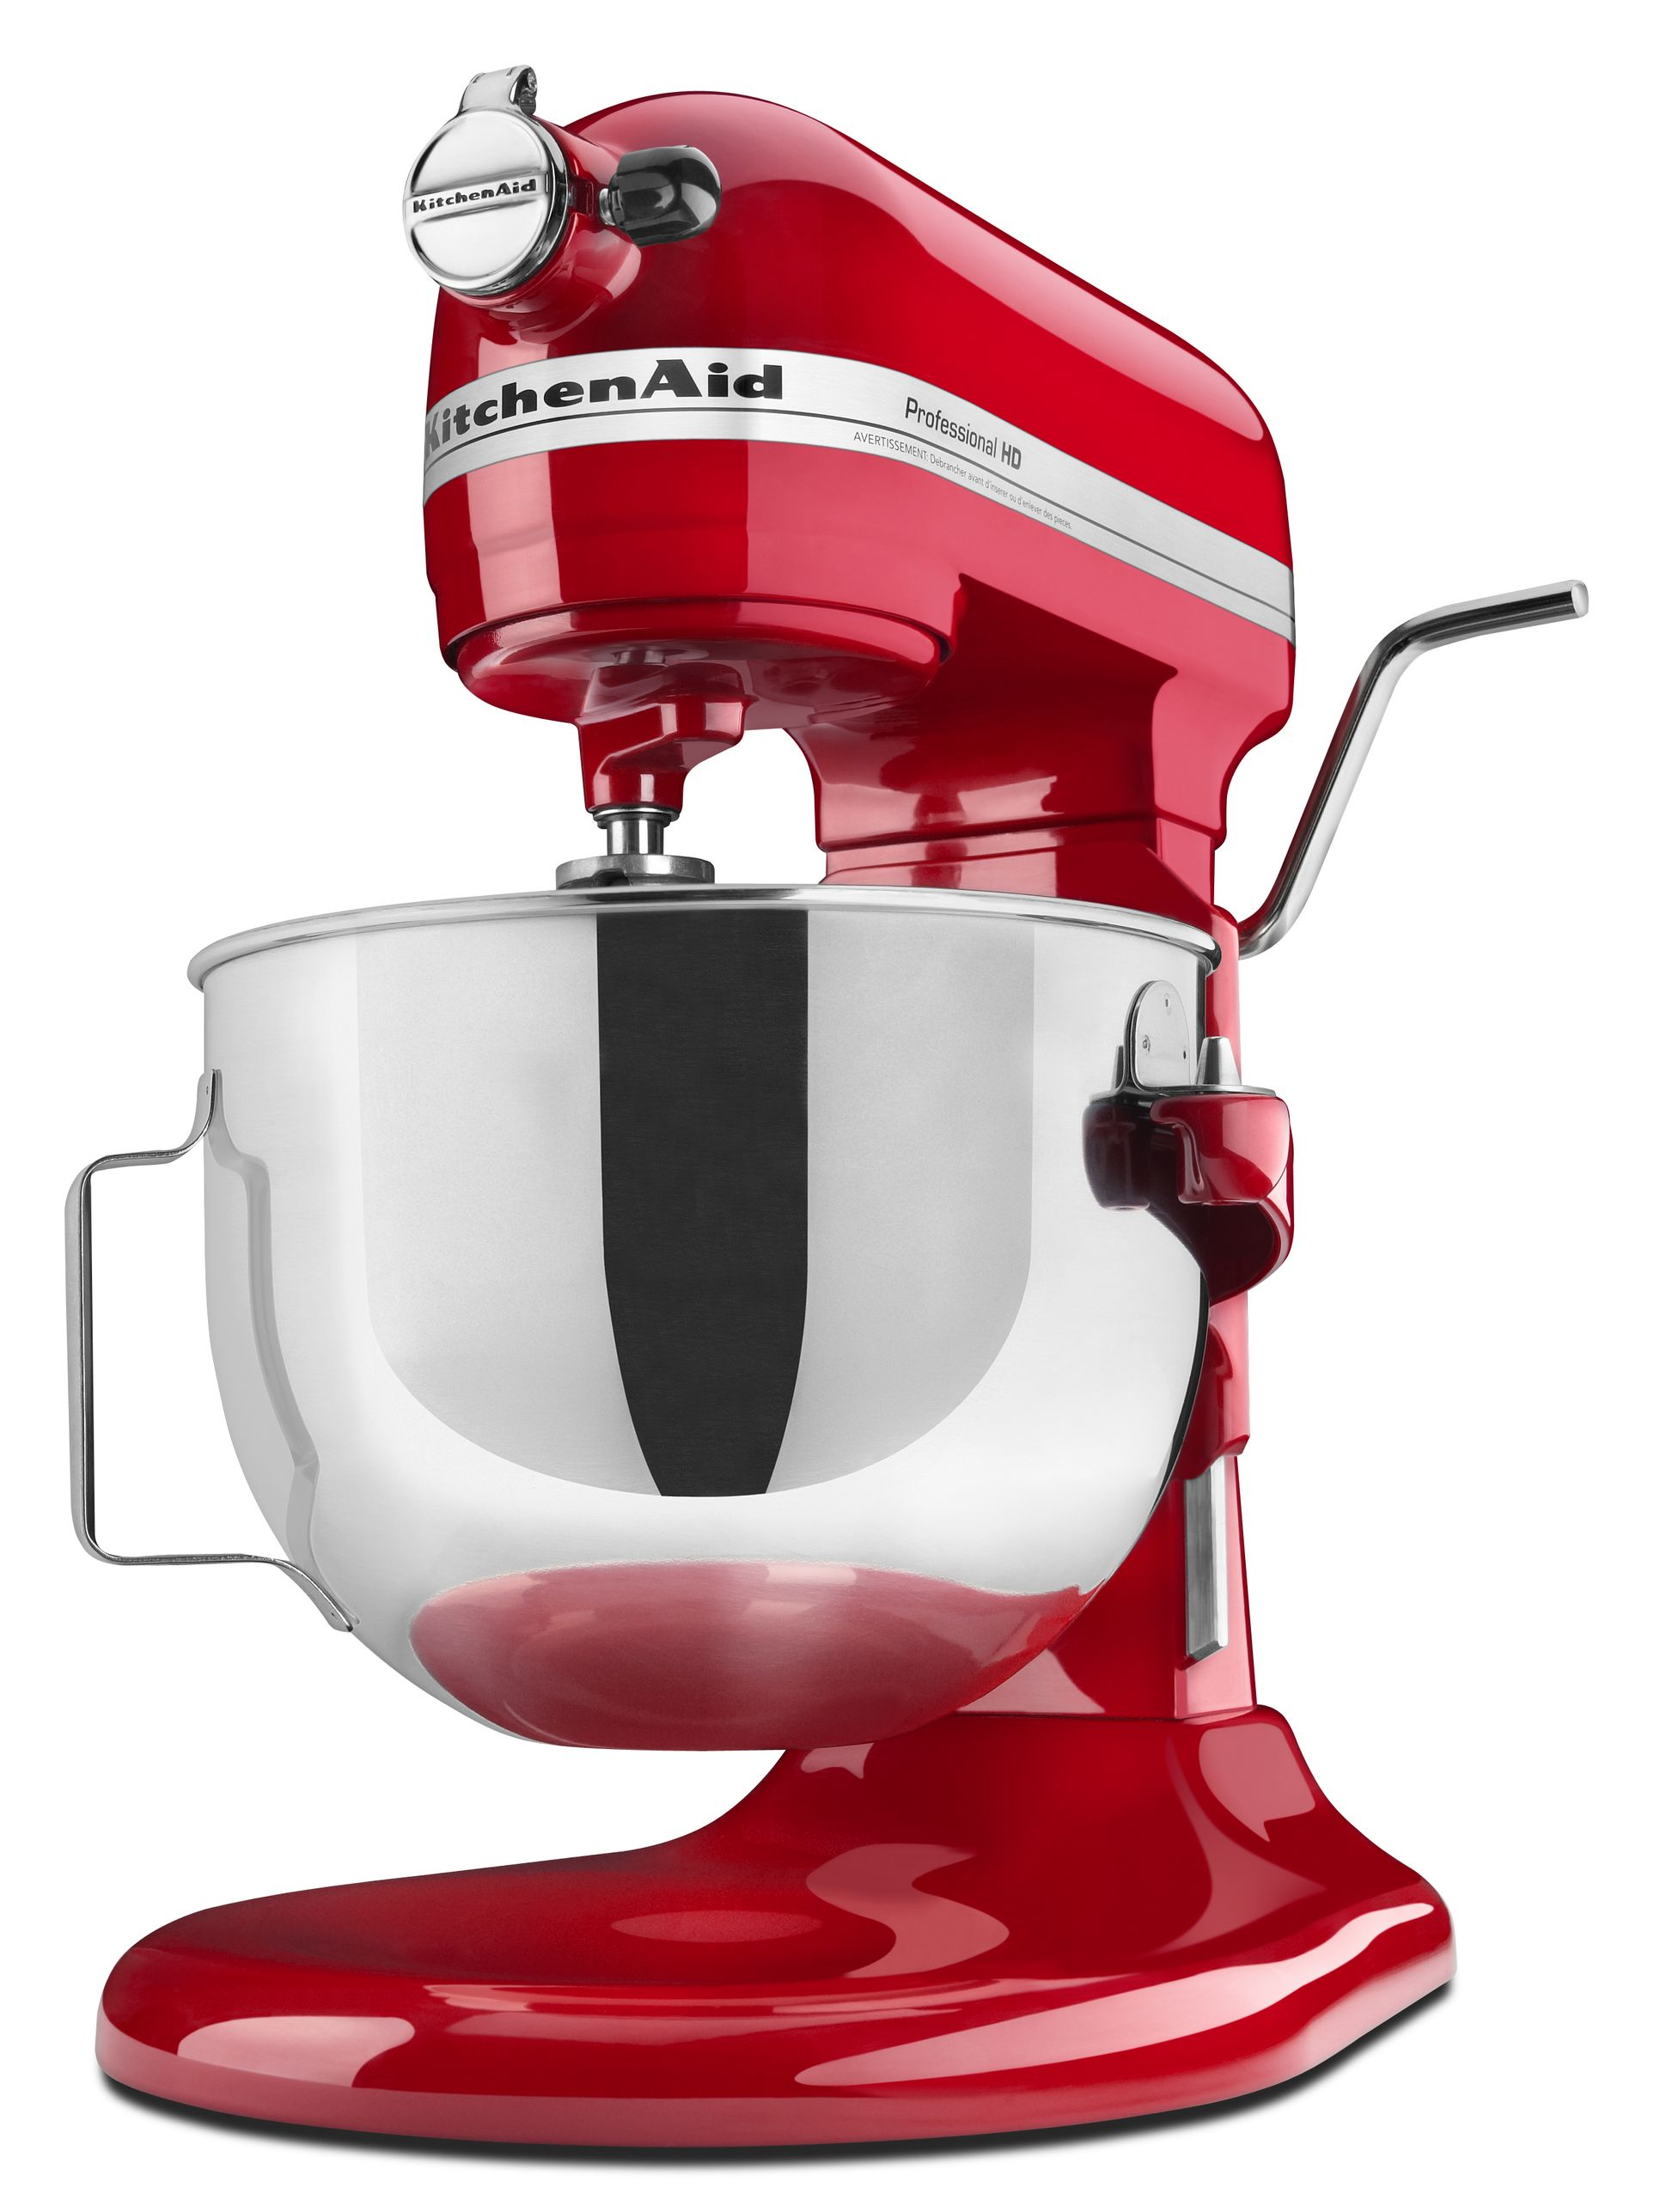 KitchenAid-Refurbished-Professional-HD-Series-Bowl-Lift-Stand-Mixer-RKG25H0X thumbnail 8